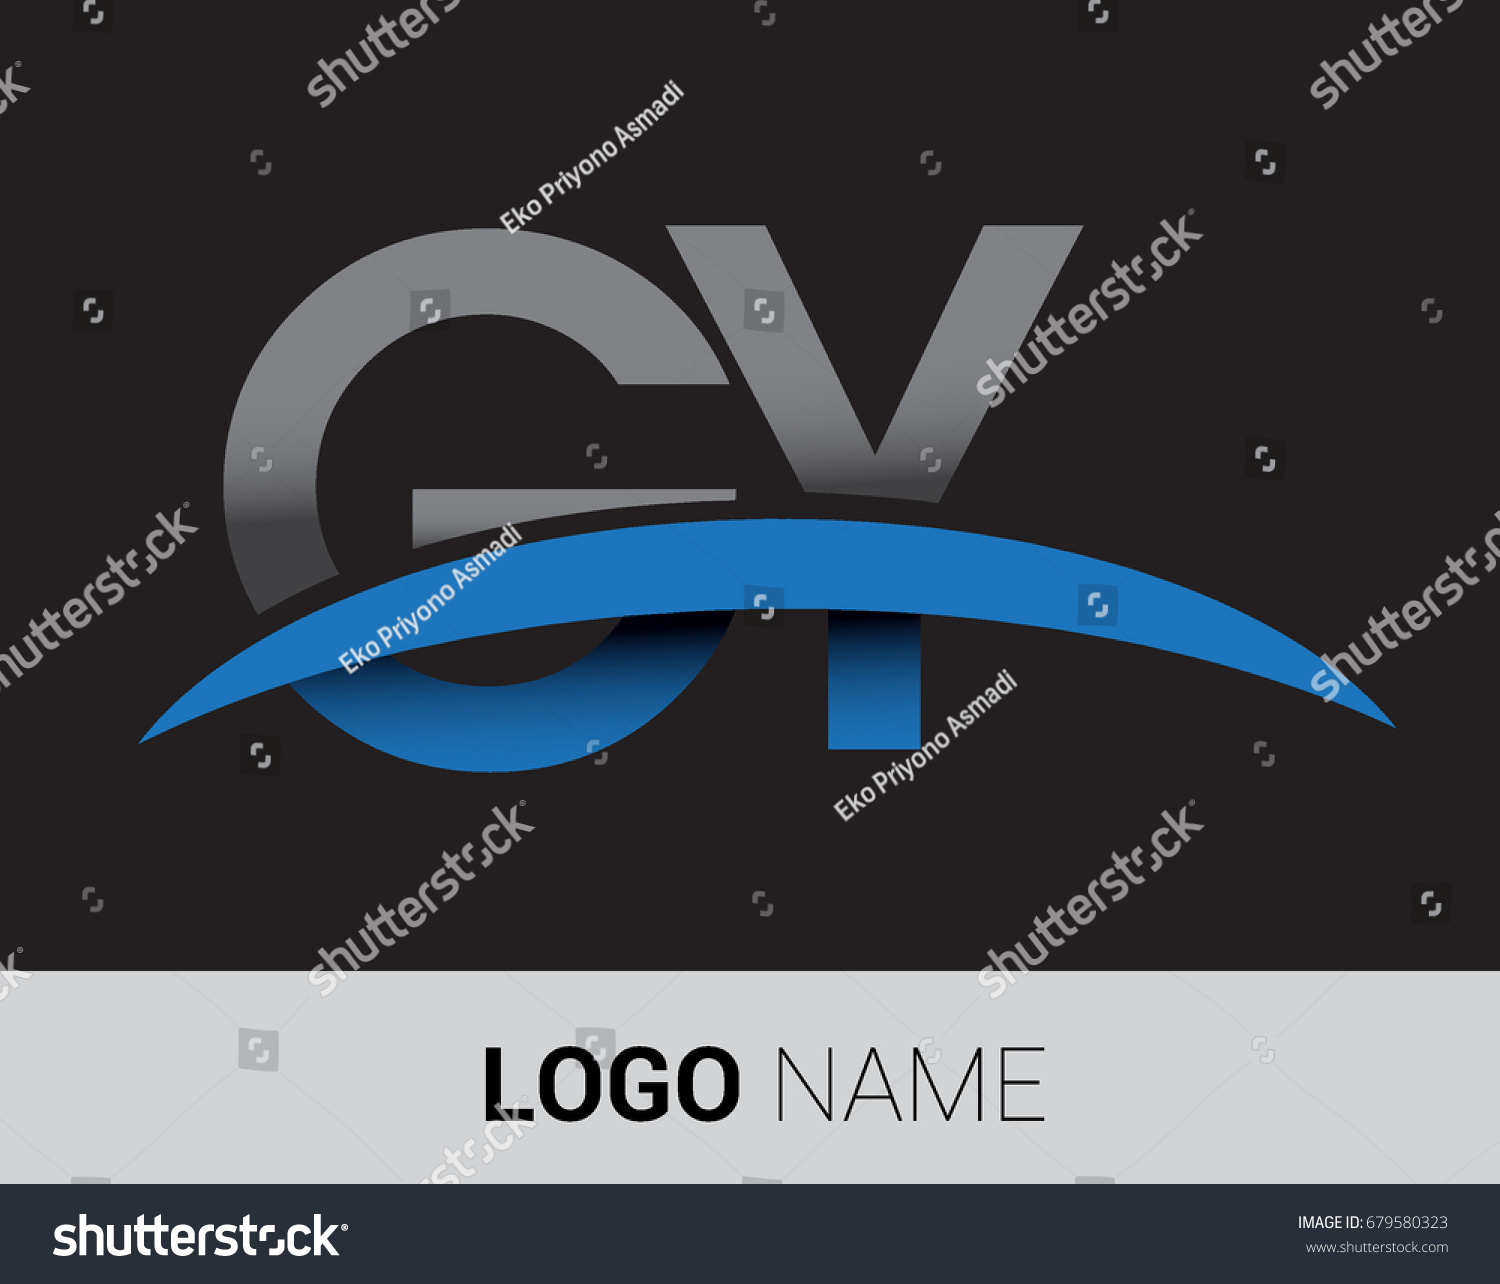 Gy initial logo company name colored stock vector 679580323 gy initial logo company name colored stock vector 679580323 shutterstock buycottarizona